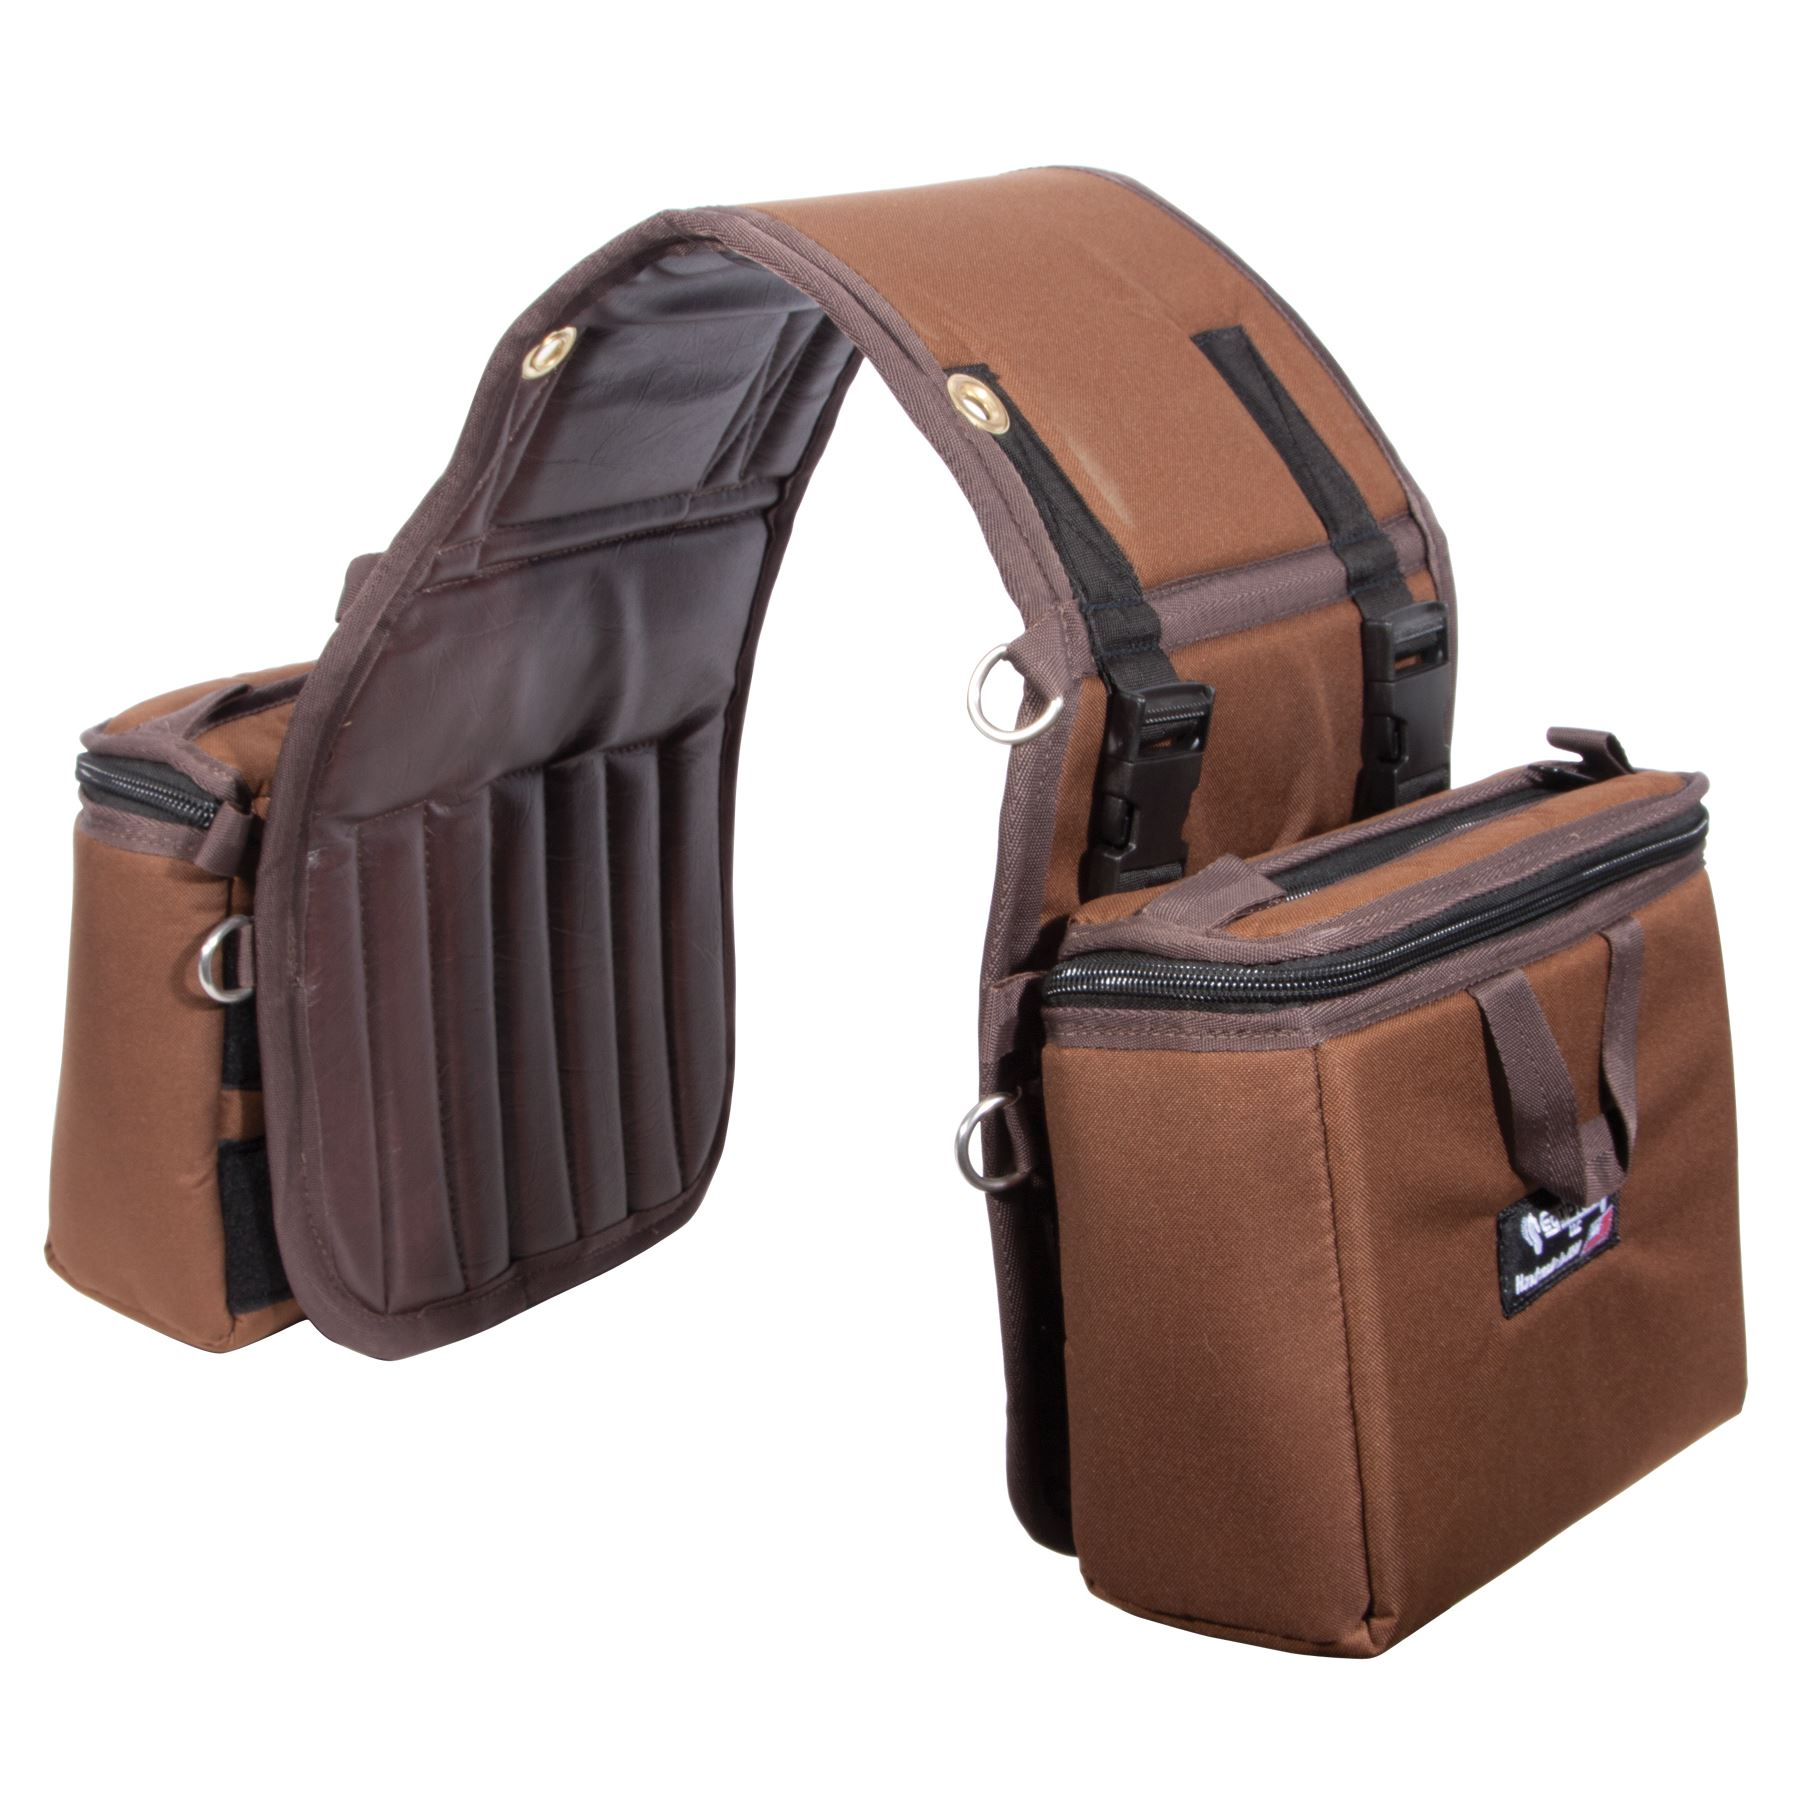 Equi Tech Stay Put Insulated Saddle Bag Small In Trail